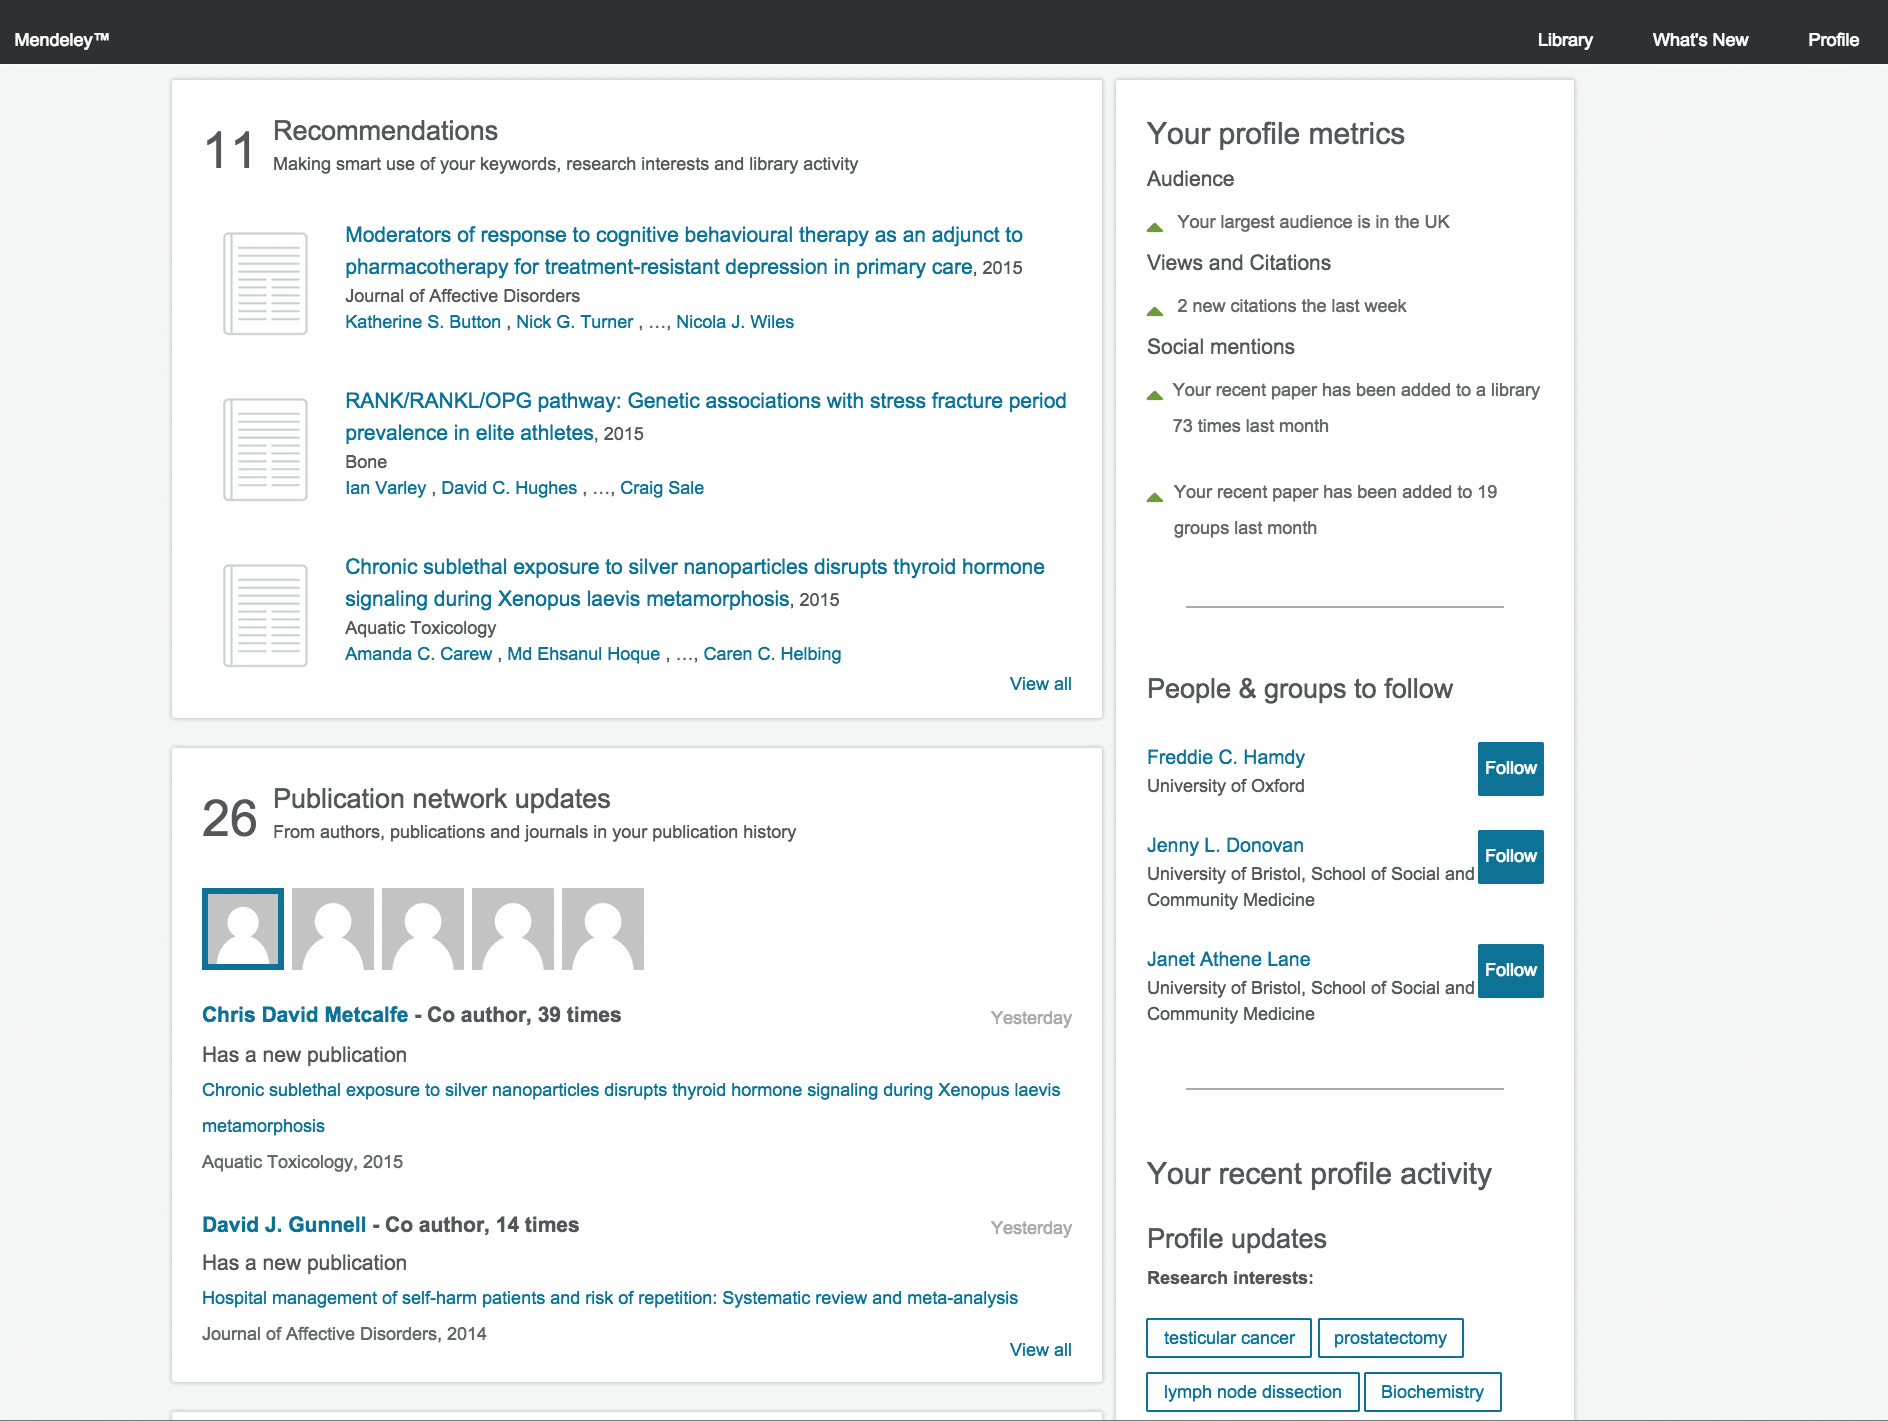 A wireframe for some of the new Mendeley features using Axure